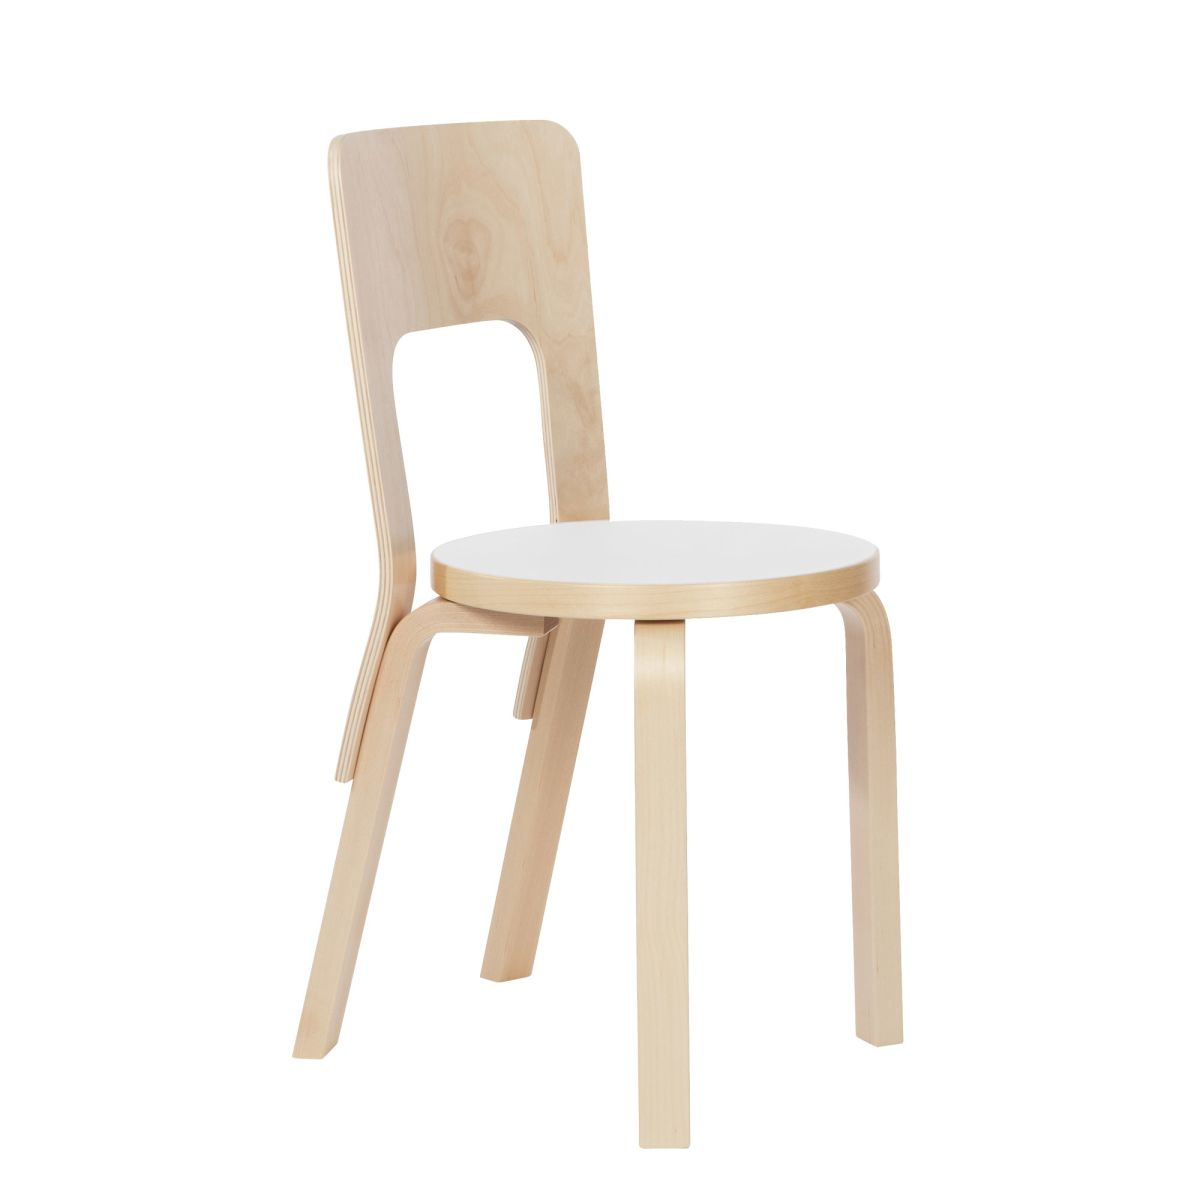 Chair 66 white laminate_WEB  sc 1 st  Artek - Products & Artek - Products